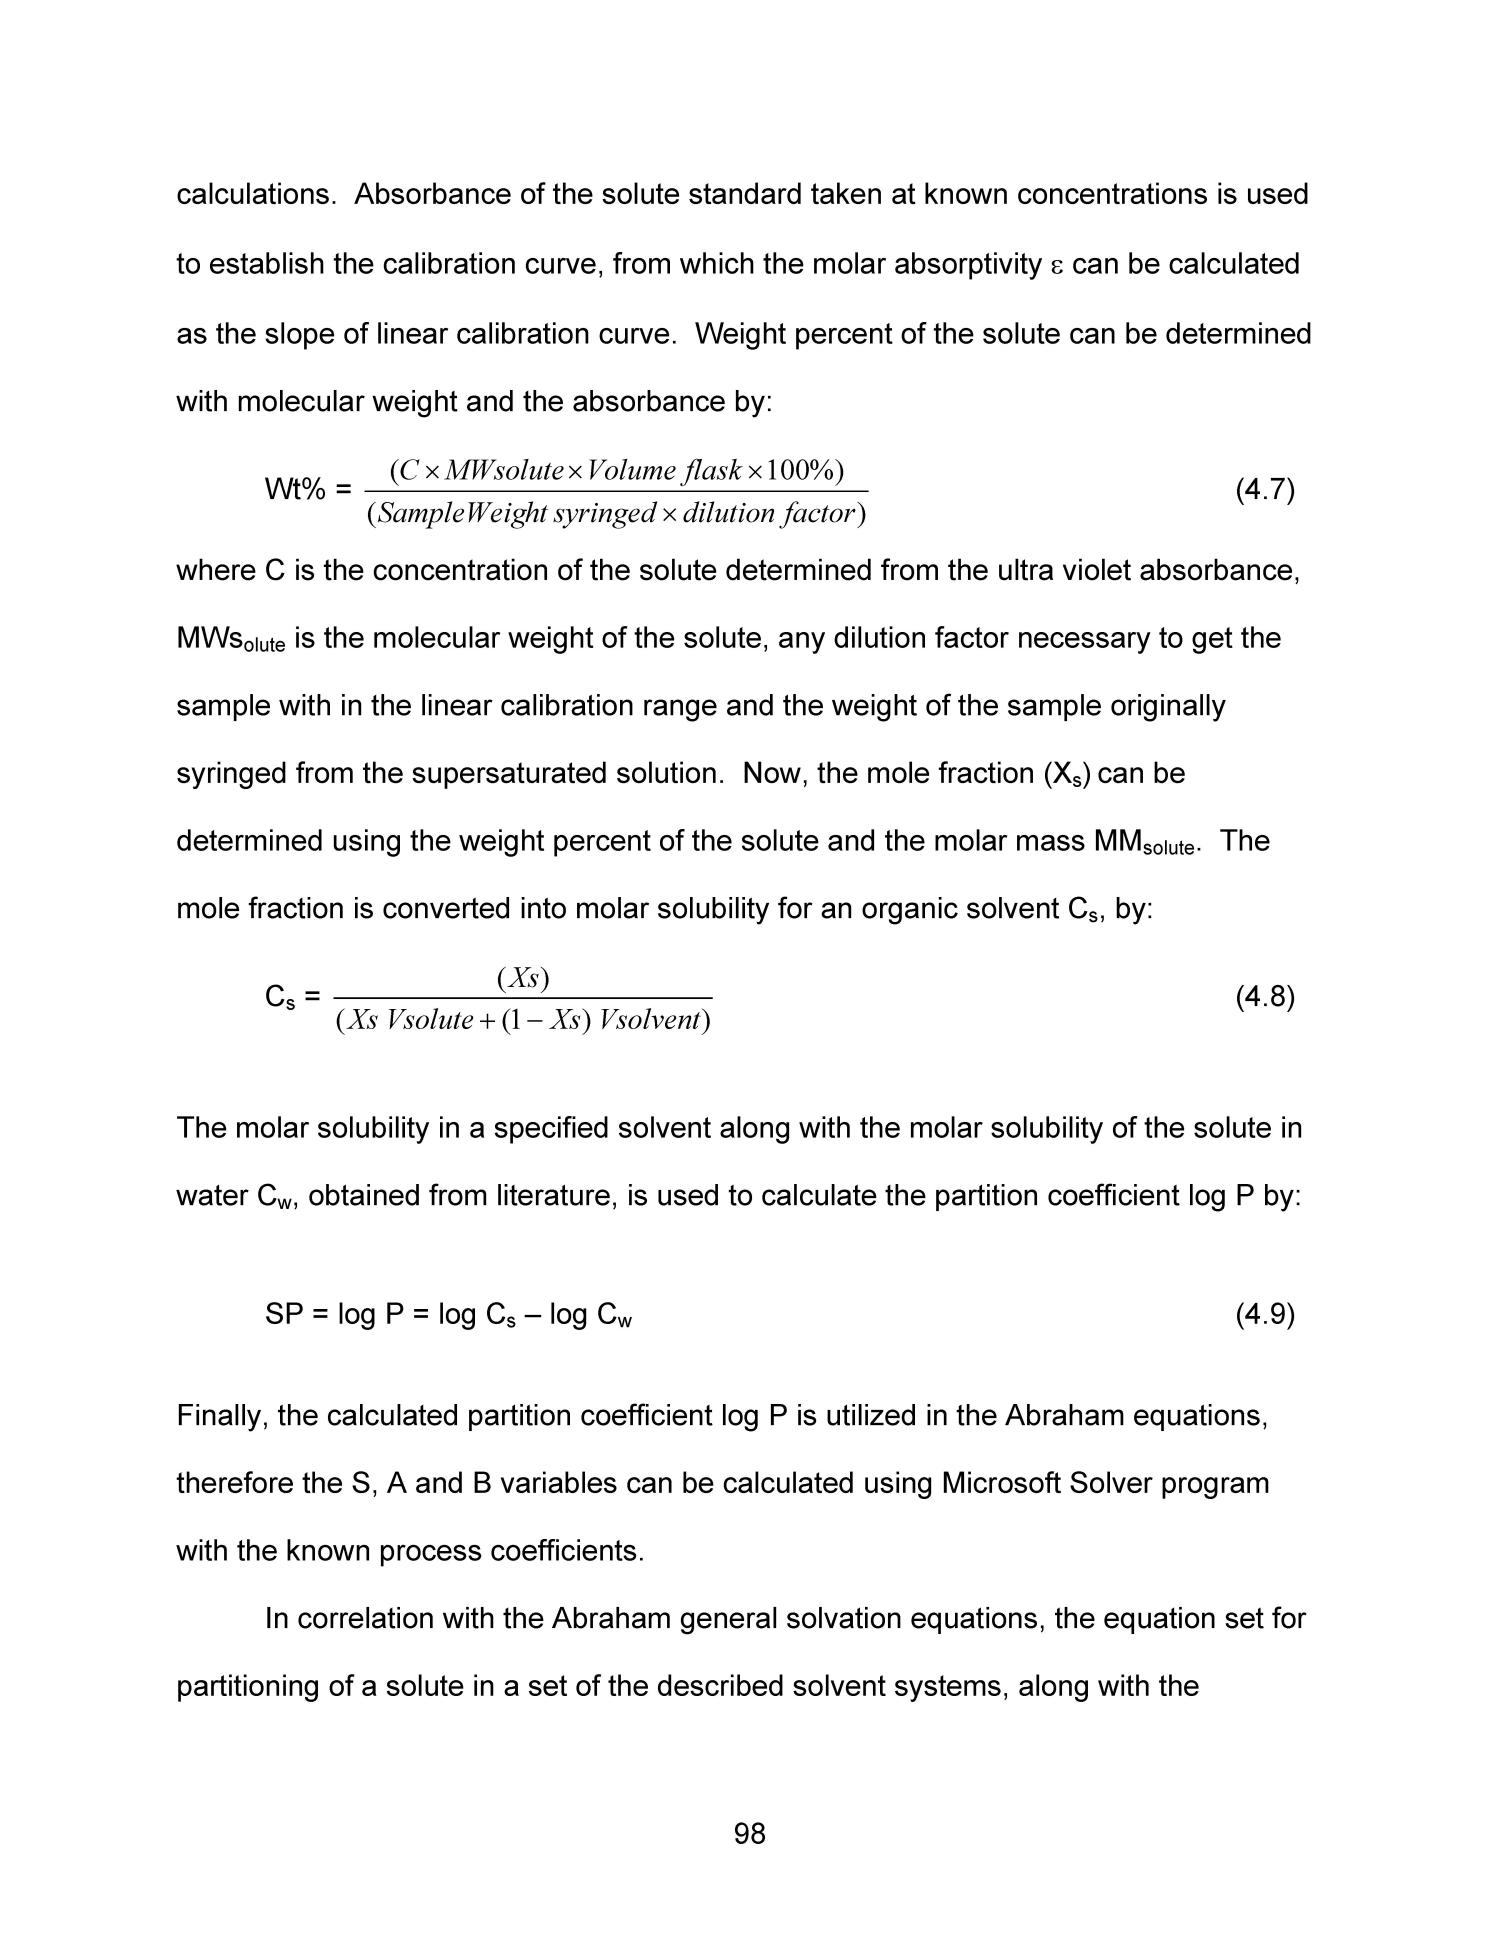 Thermodynamics of the Abraham General Solvation Model